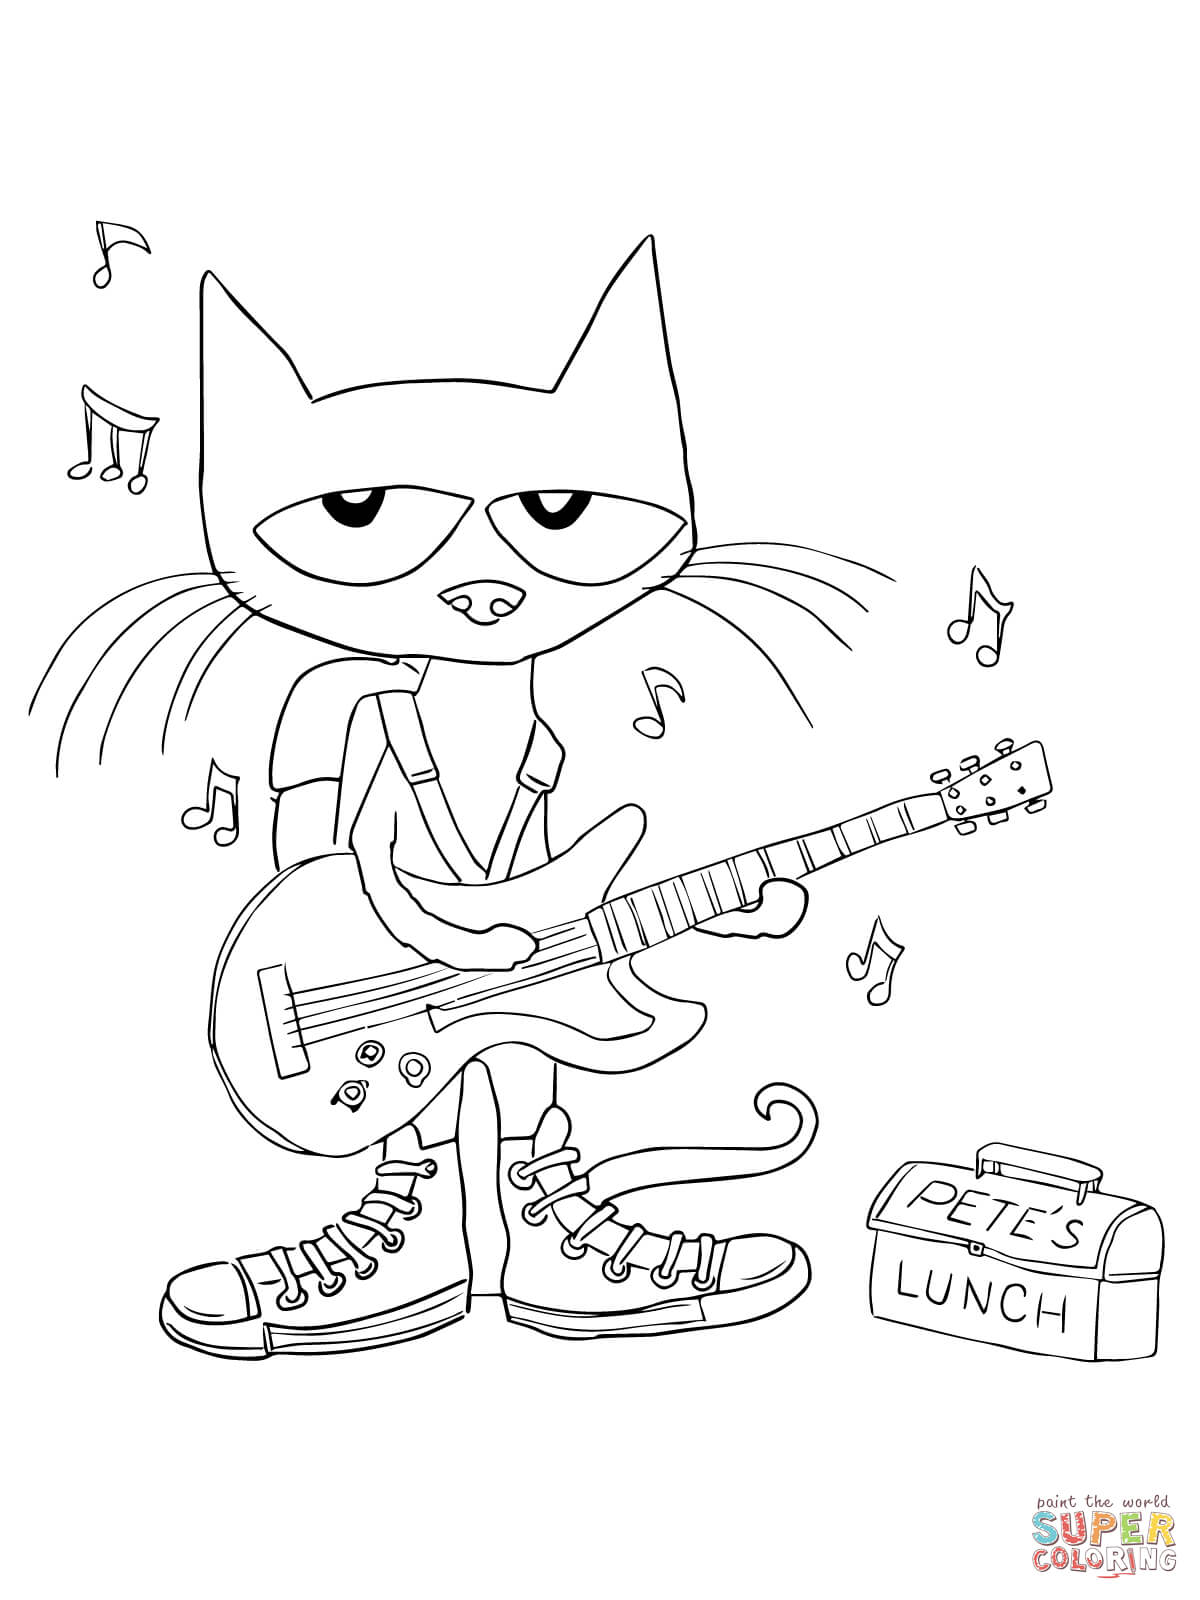 Pete The Cat Coloring Pages : coloring, pages, Printables, Coloring